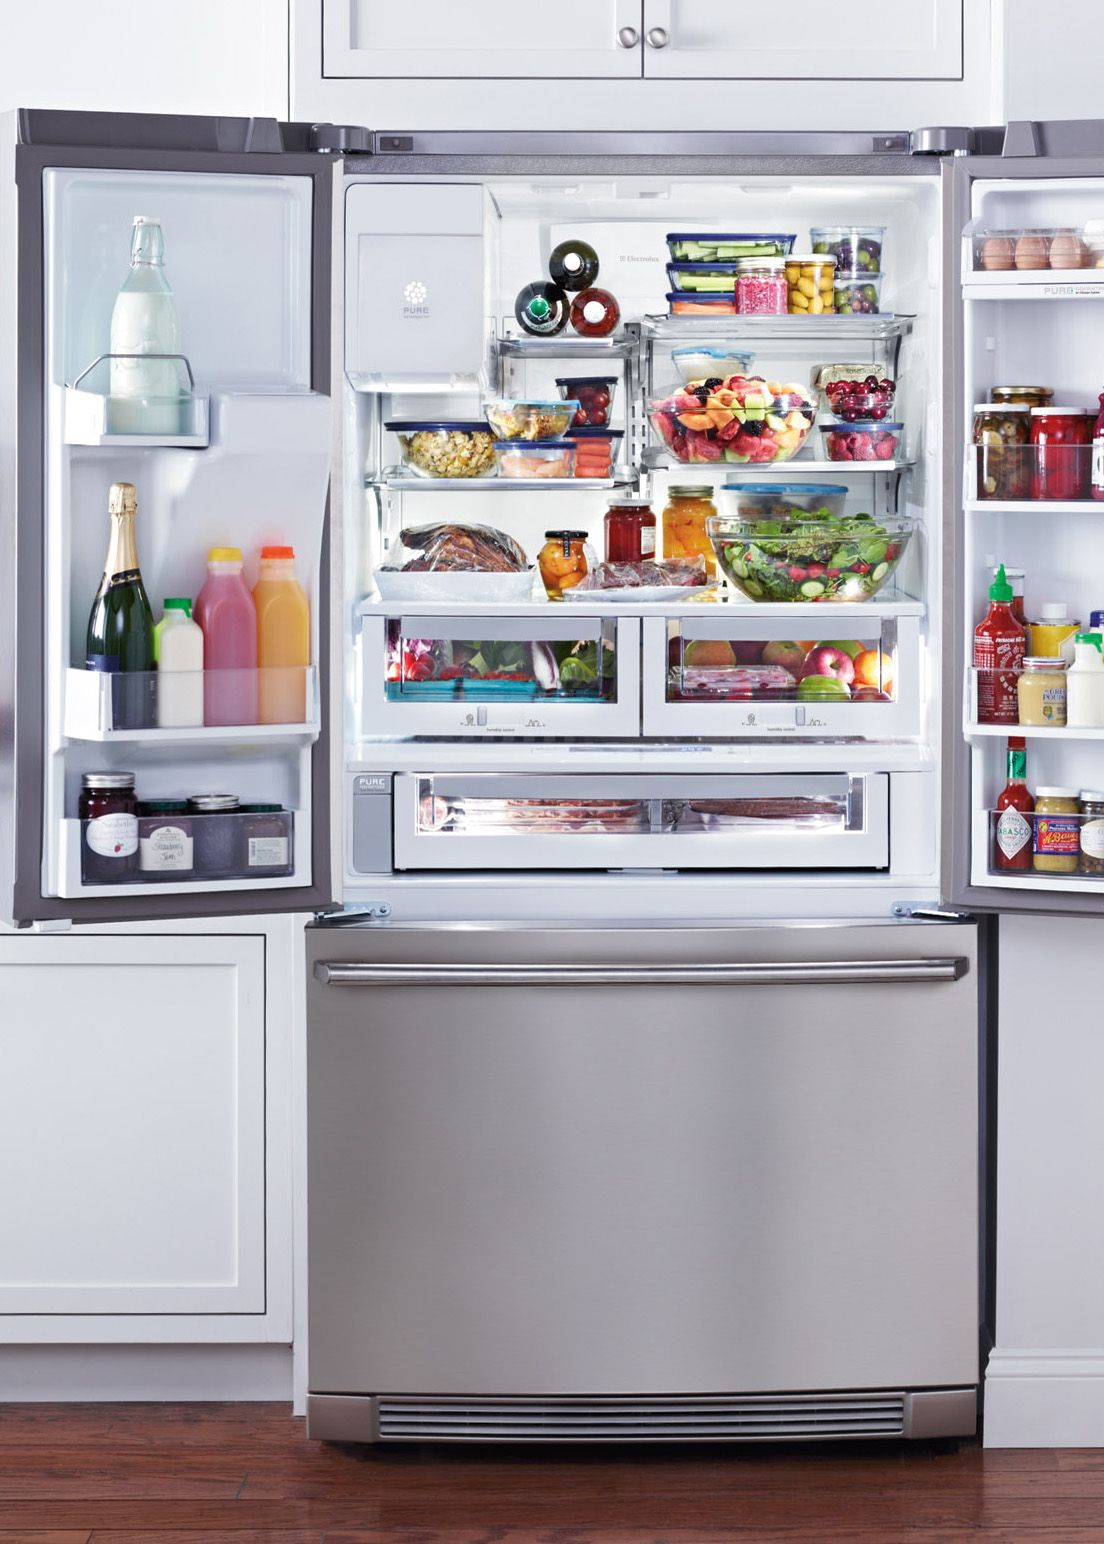 Electrolux Wave Touch 2174 Cu Ft French Door Refrigerator In